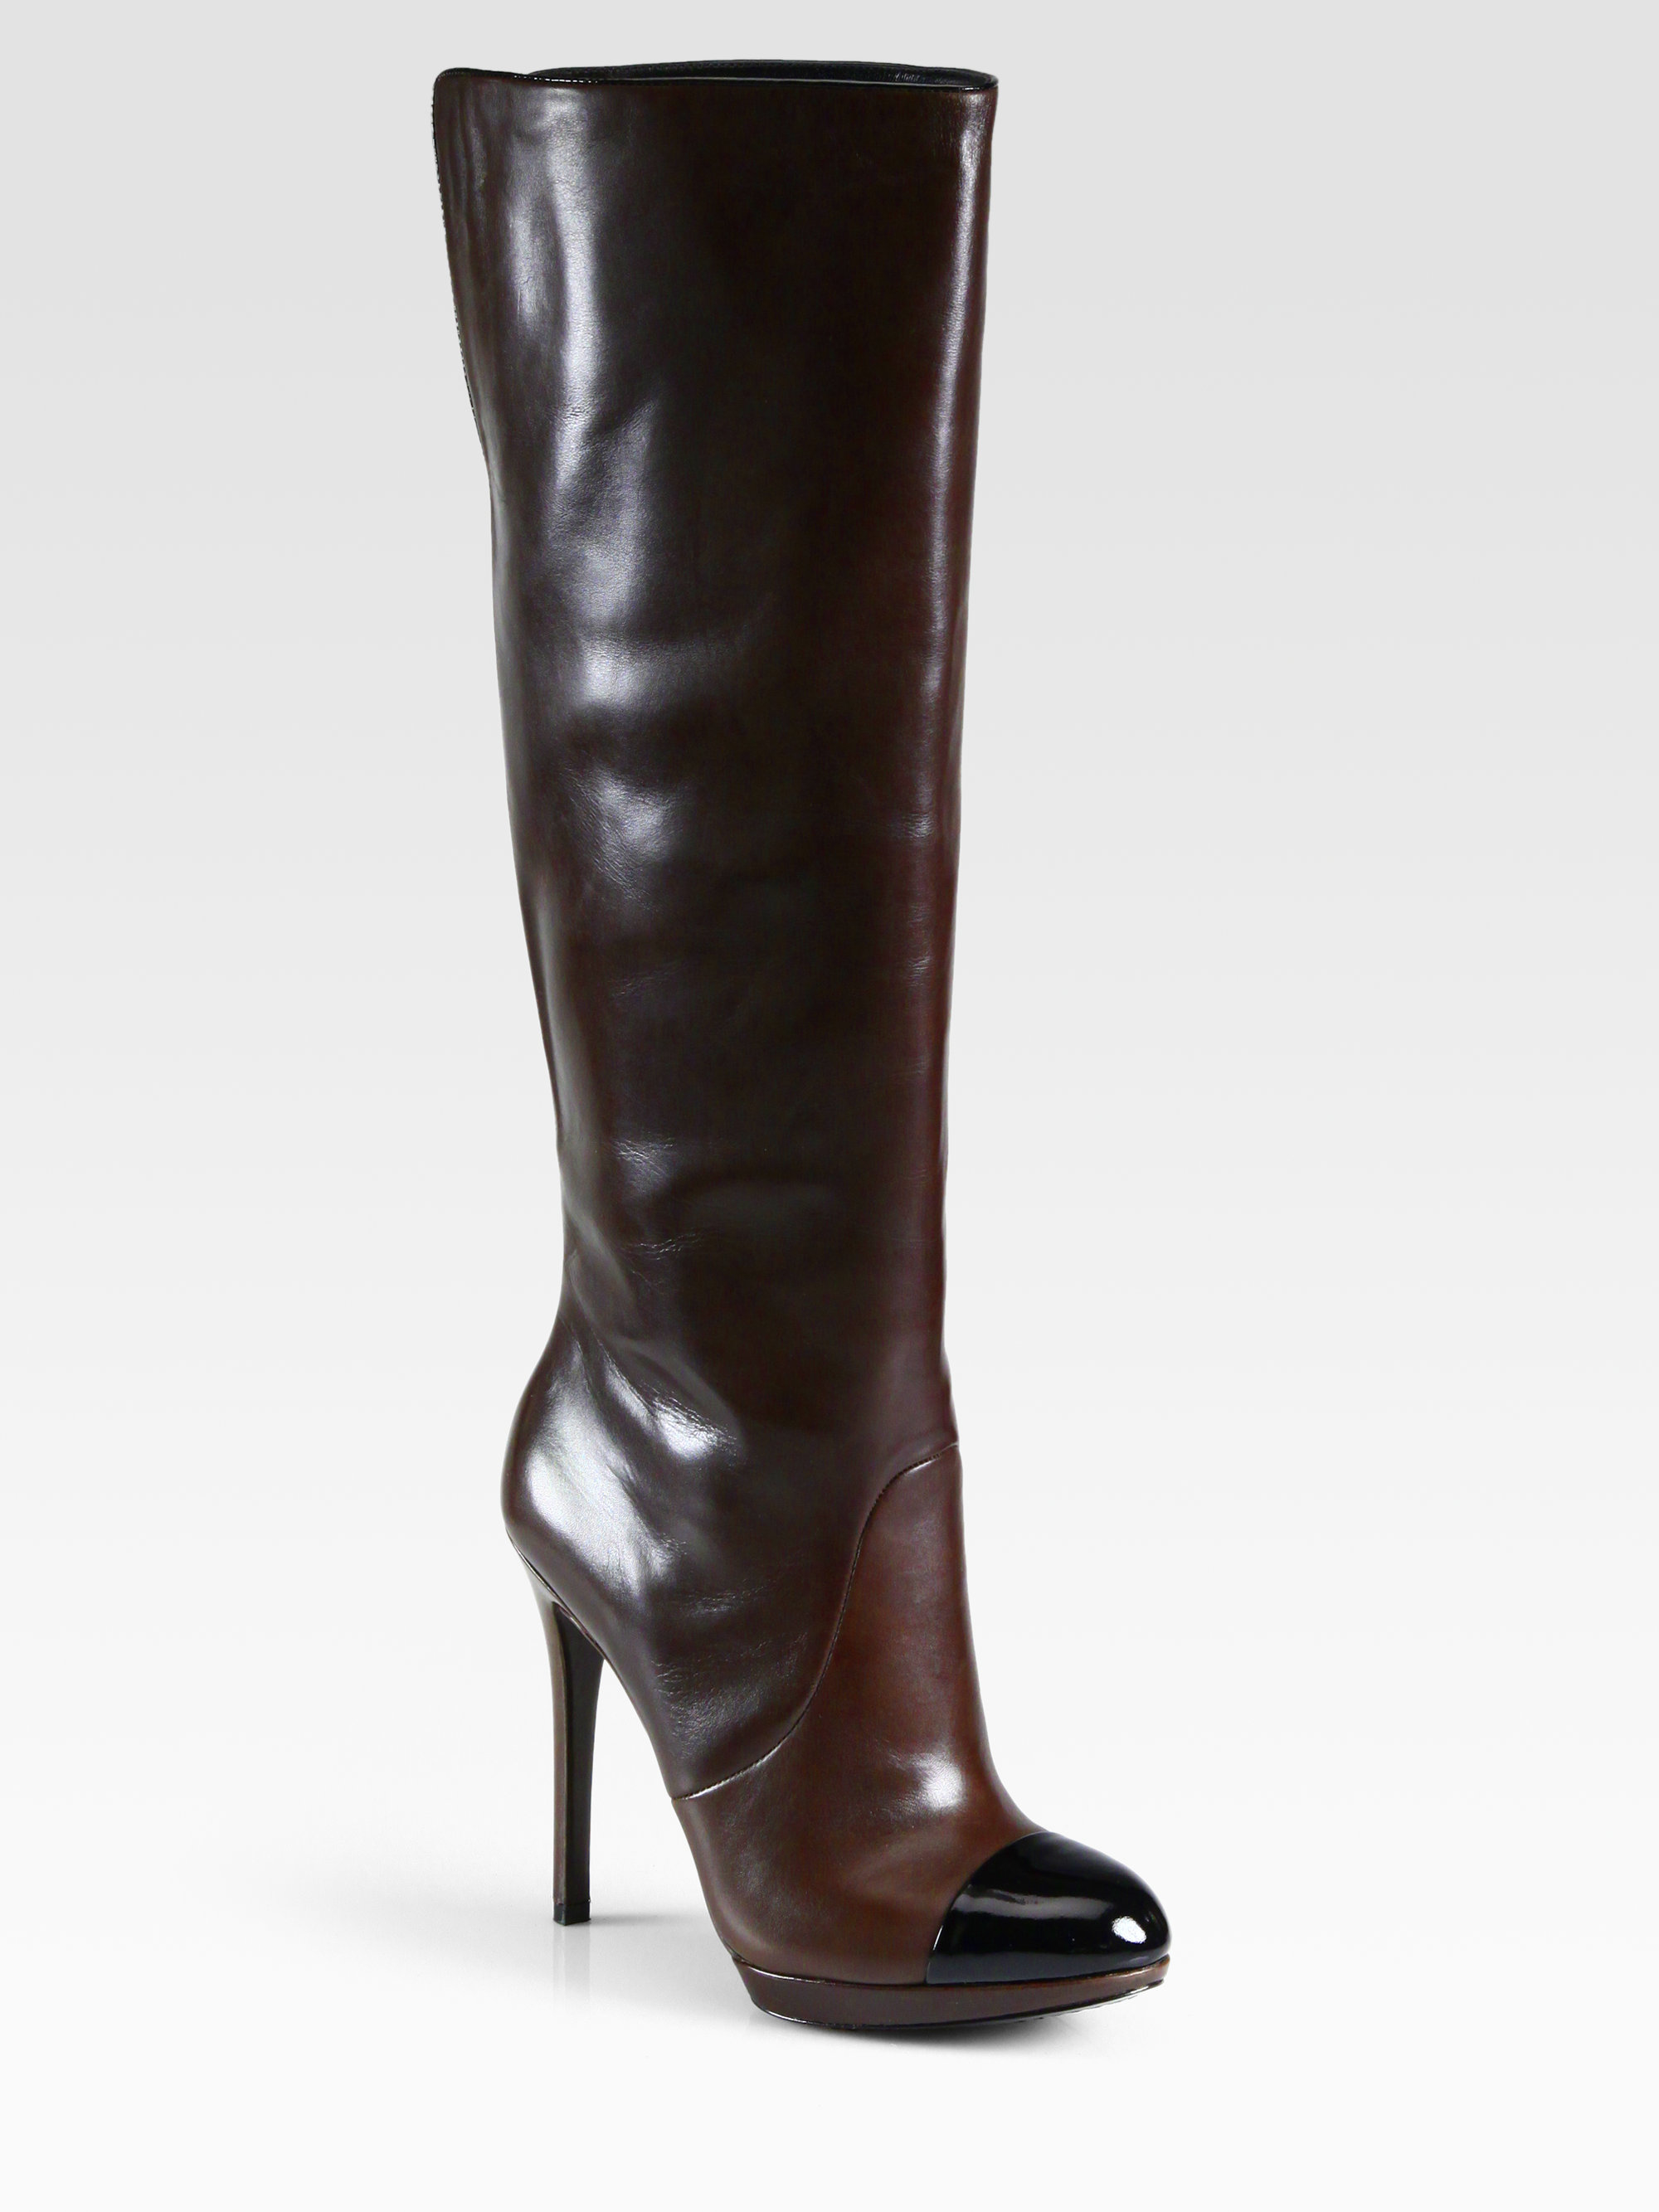 B brian atwood Platform Knee-high Boots in Black | Lyst